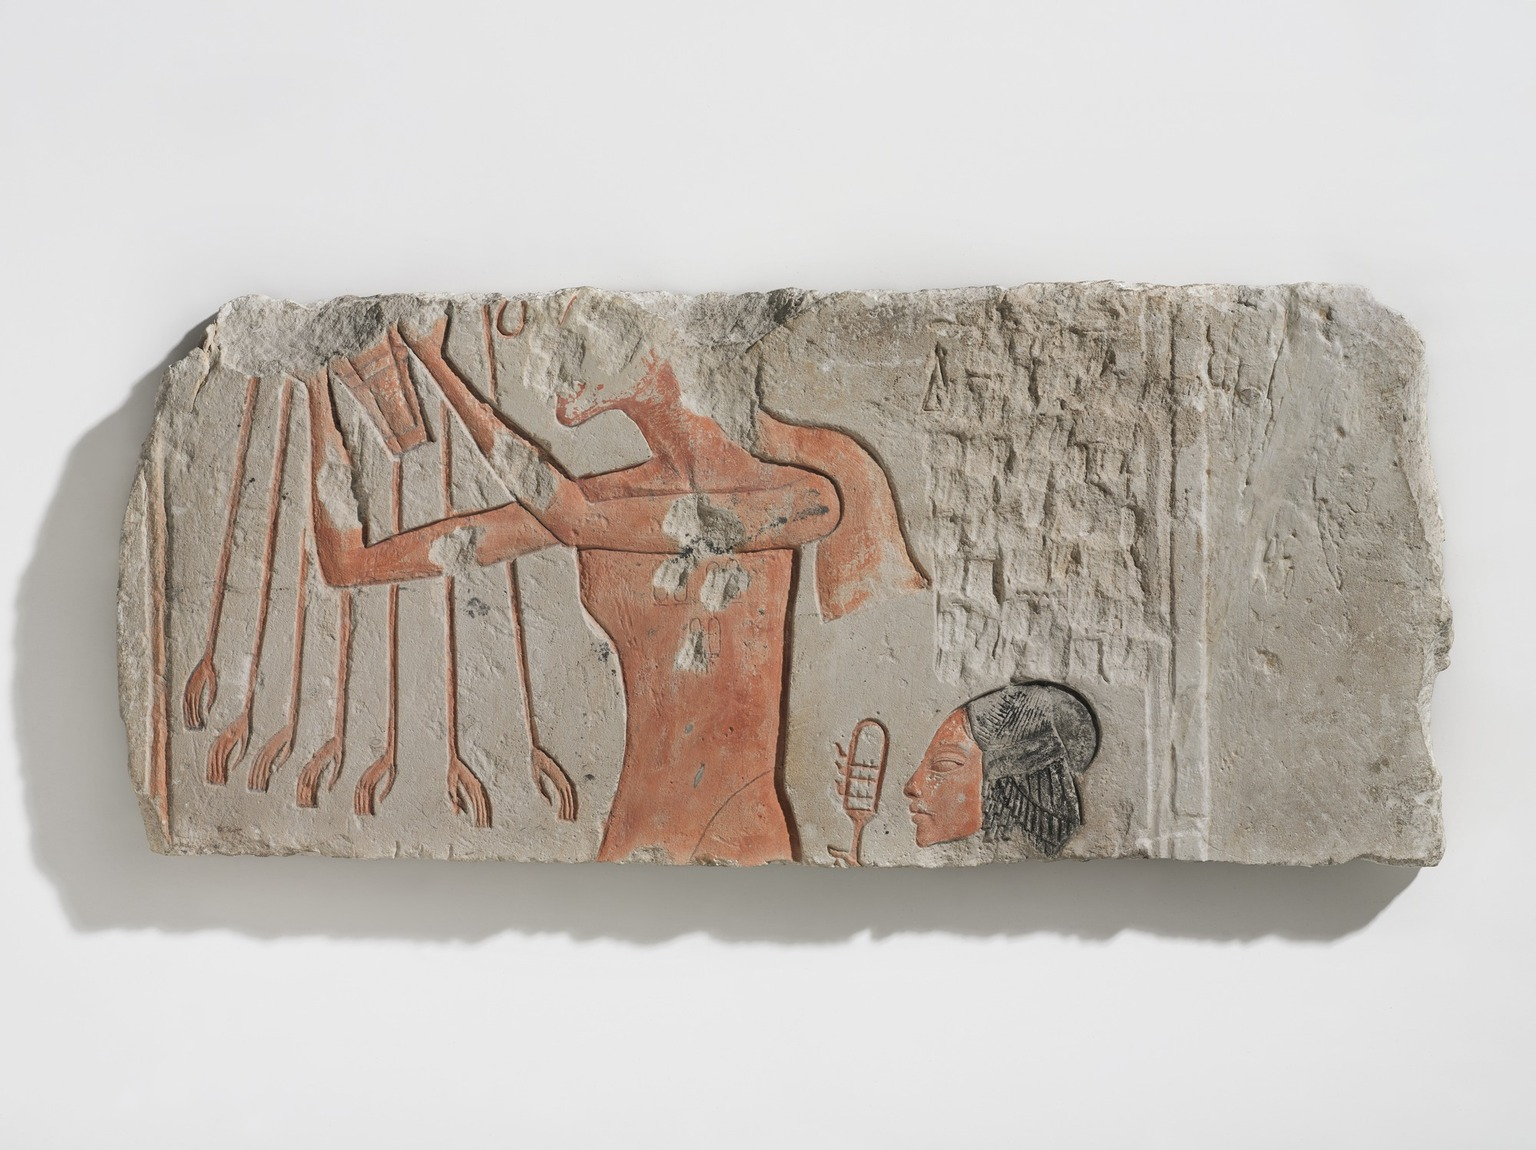 Akhenaten and his daughter offering of the sun. As you do.